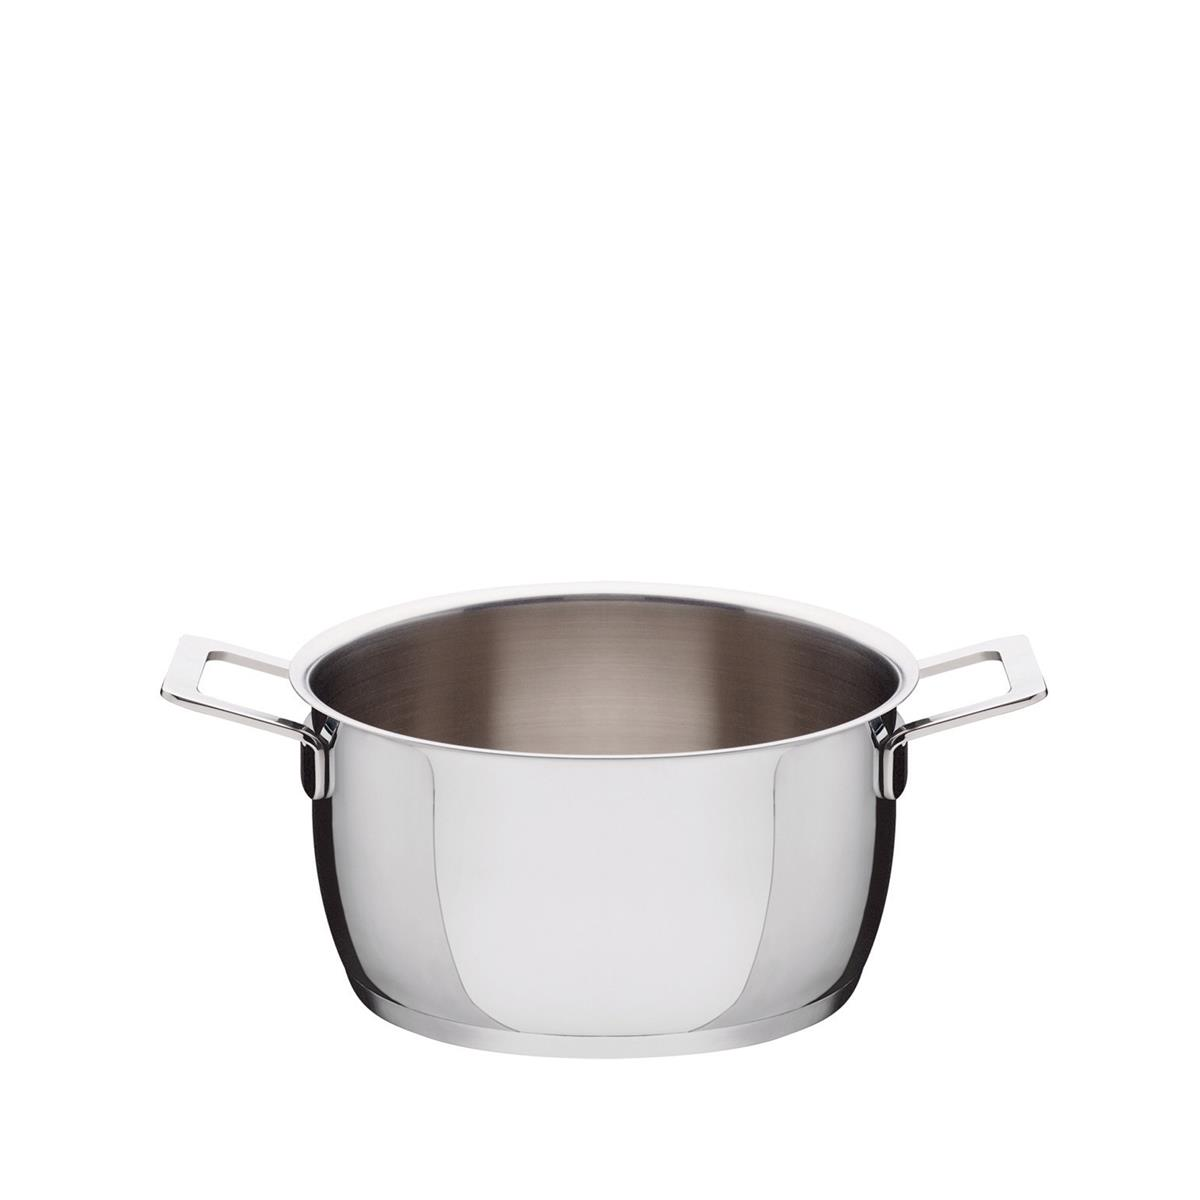 Alessi-Pots & Pans Casserole in 18/10 stainless steel suitable for induction